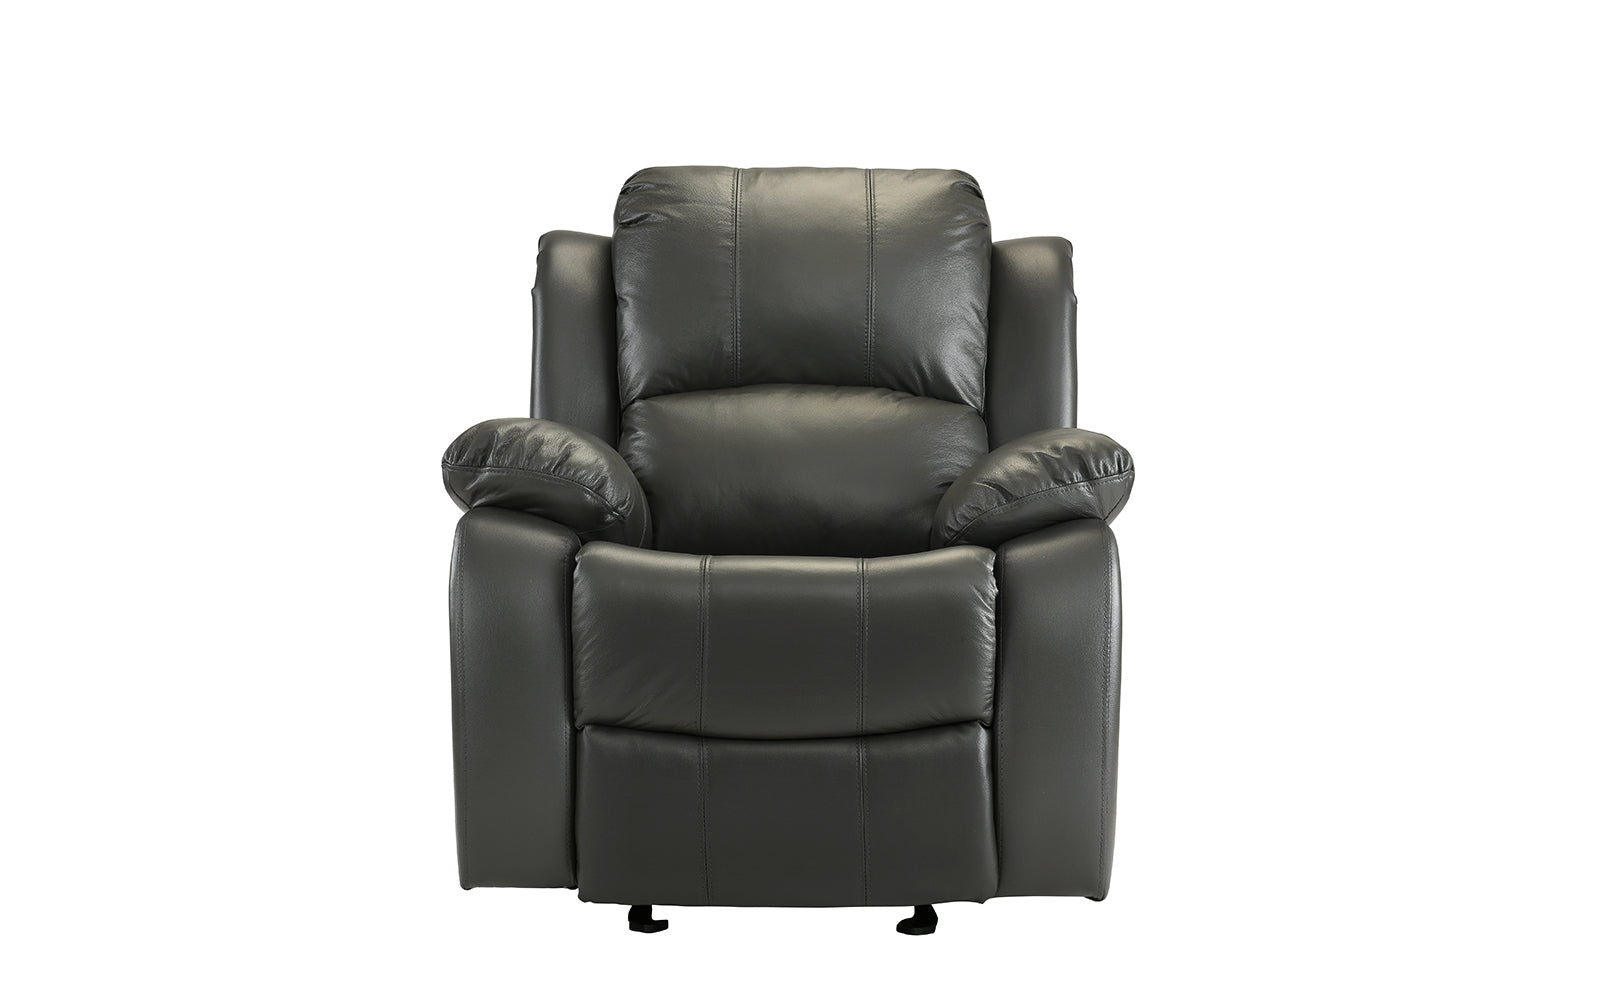 Leather Recliner Image